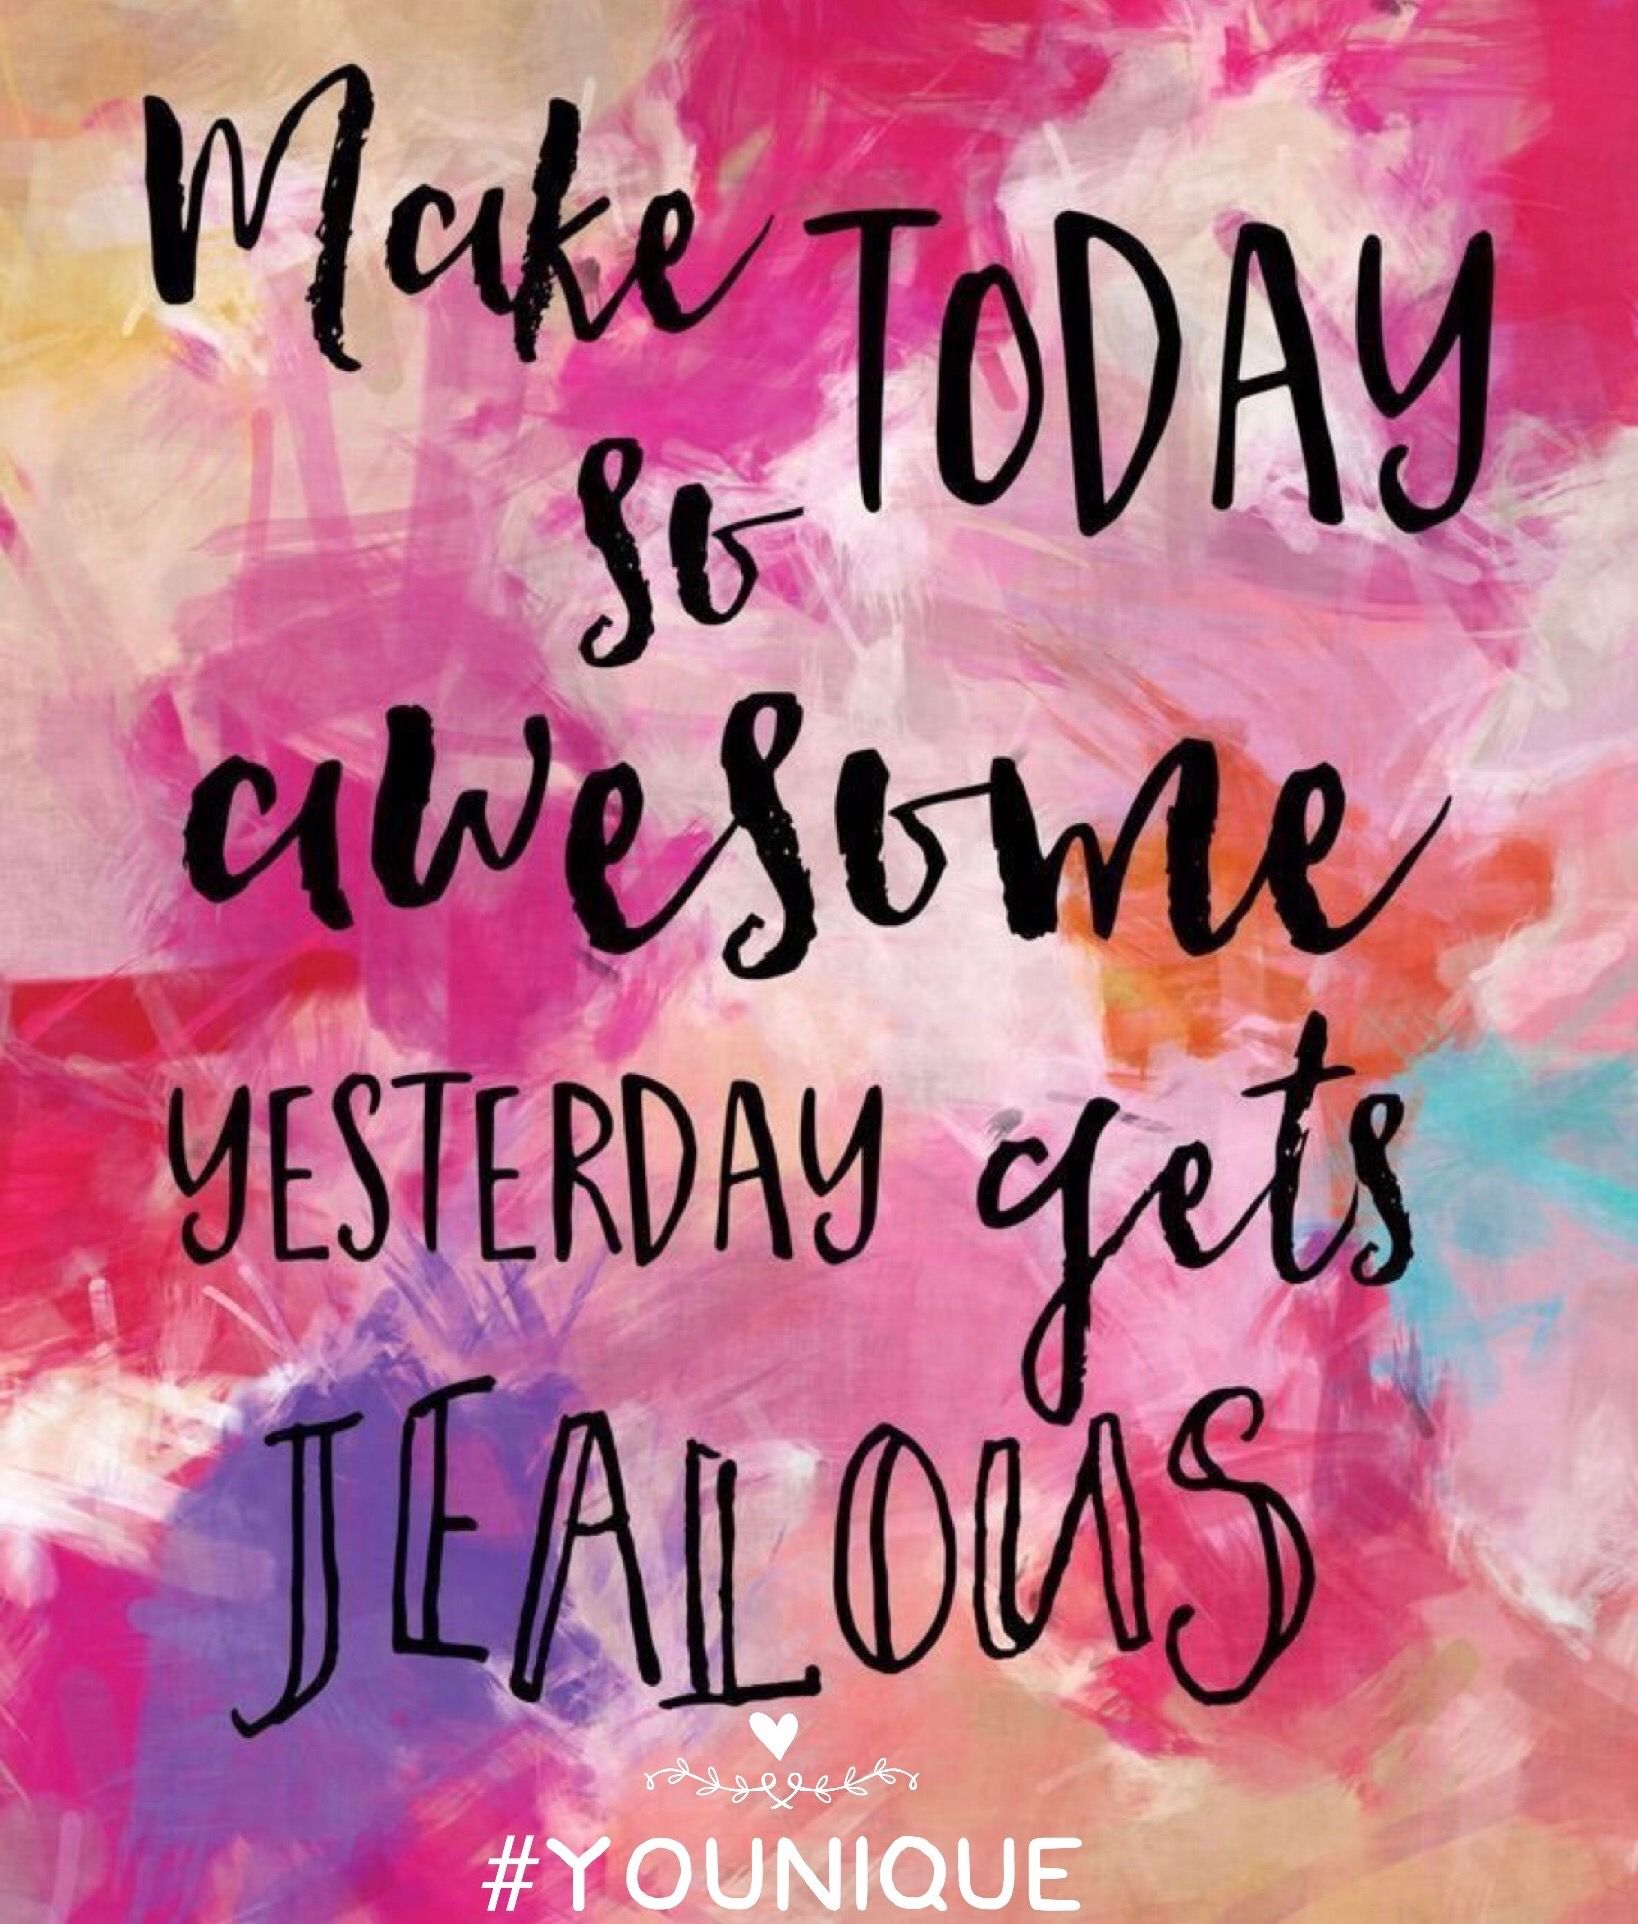 HA! I love this quote! Make today so awesome yesterday